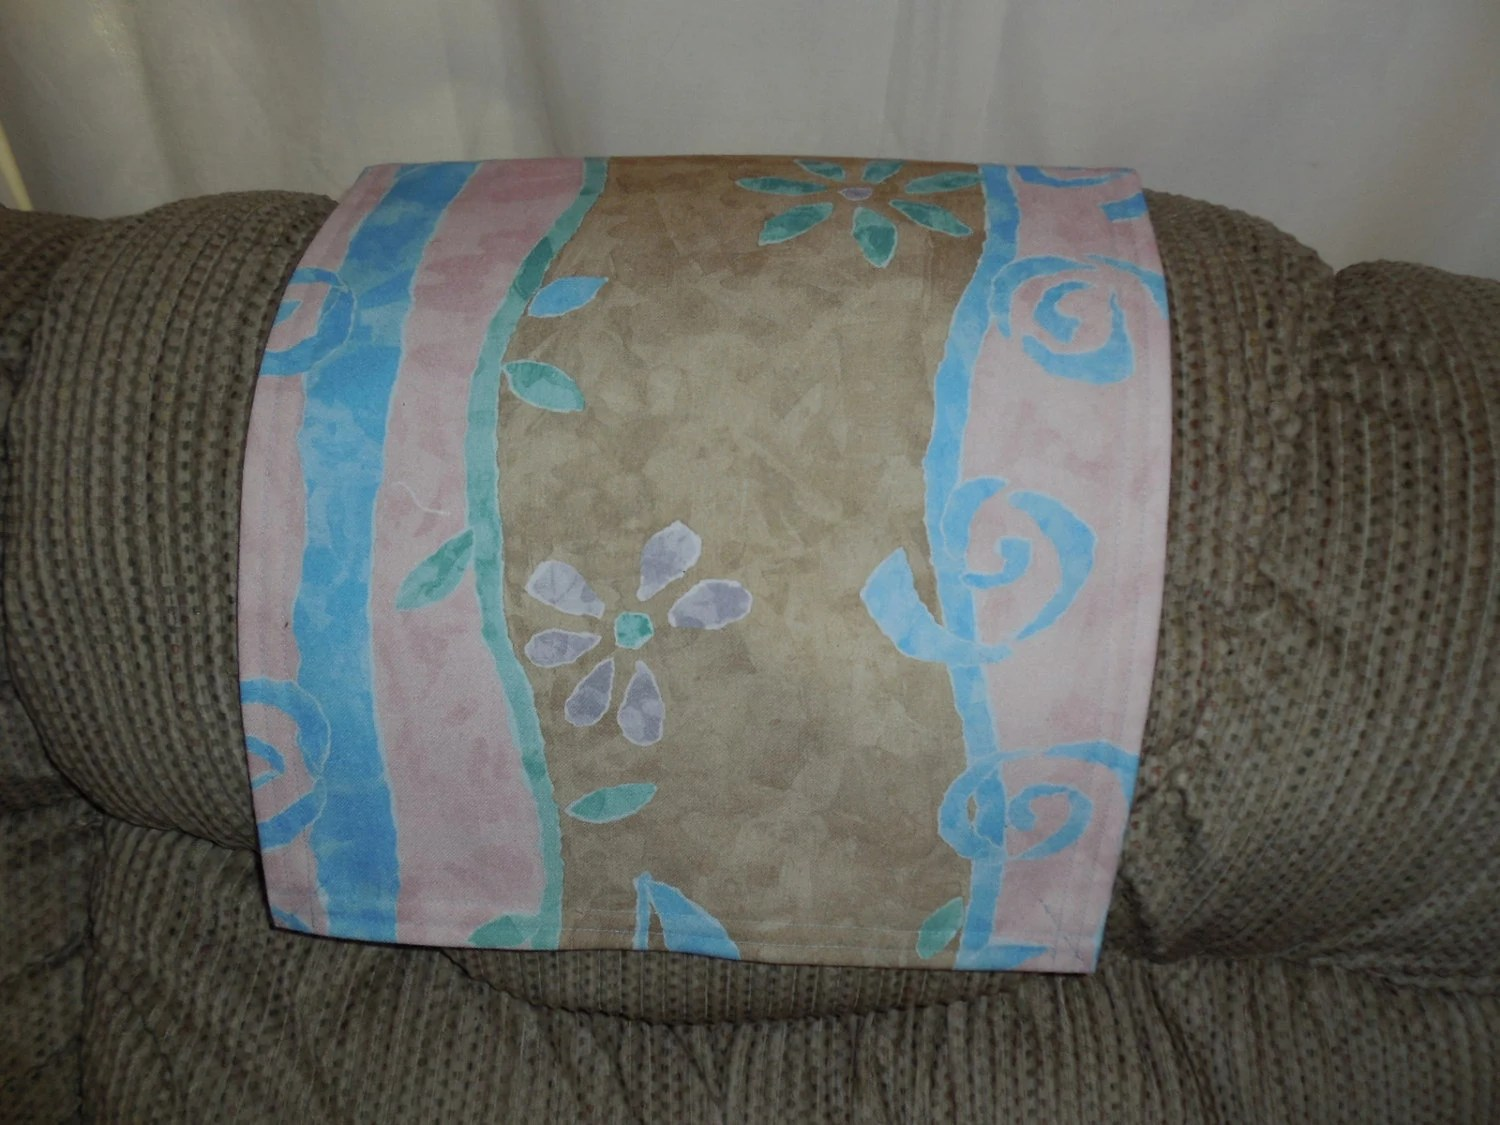 chair headrest cover pedicure chairs no plumbing needed pad recliner furniture by stitchnart